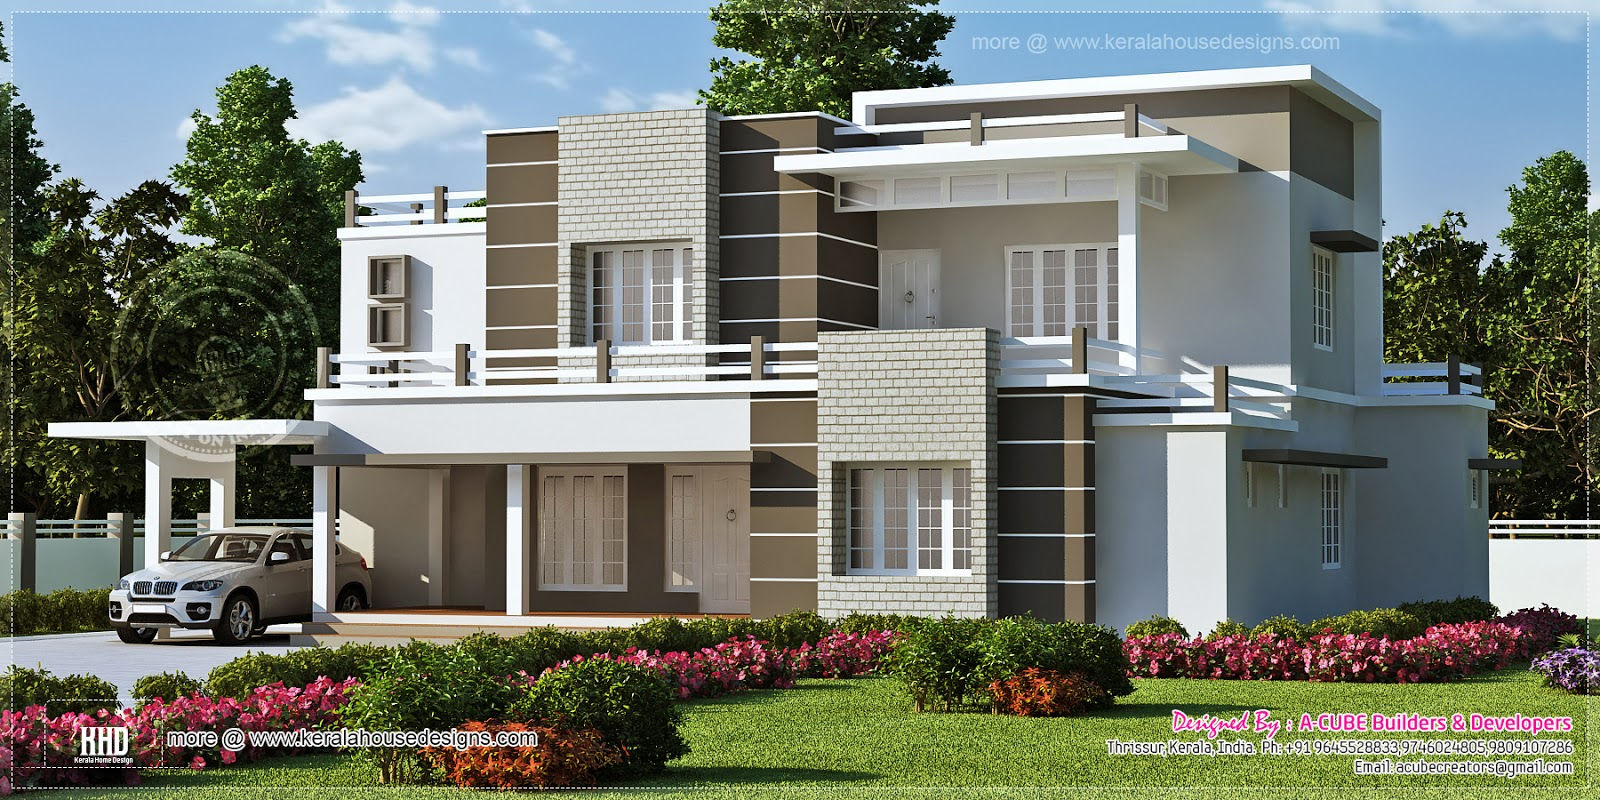 Beautiful sober color contemporary home design kerala for Small contemporary home designs